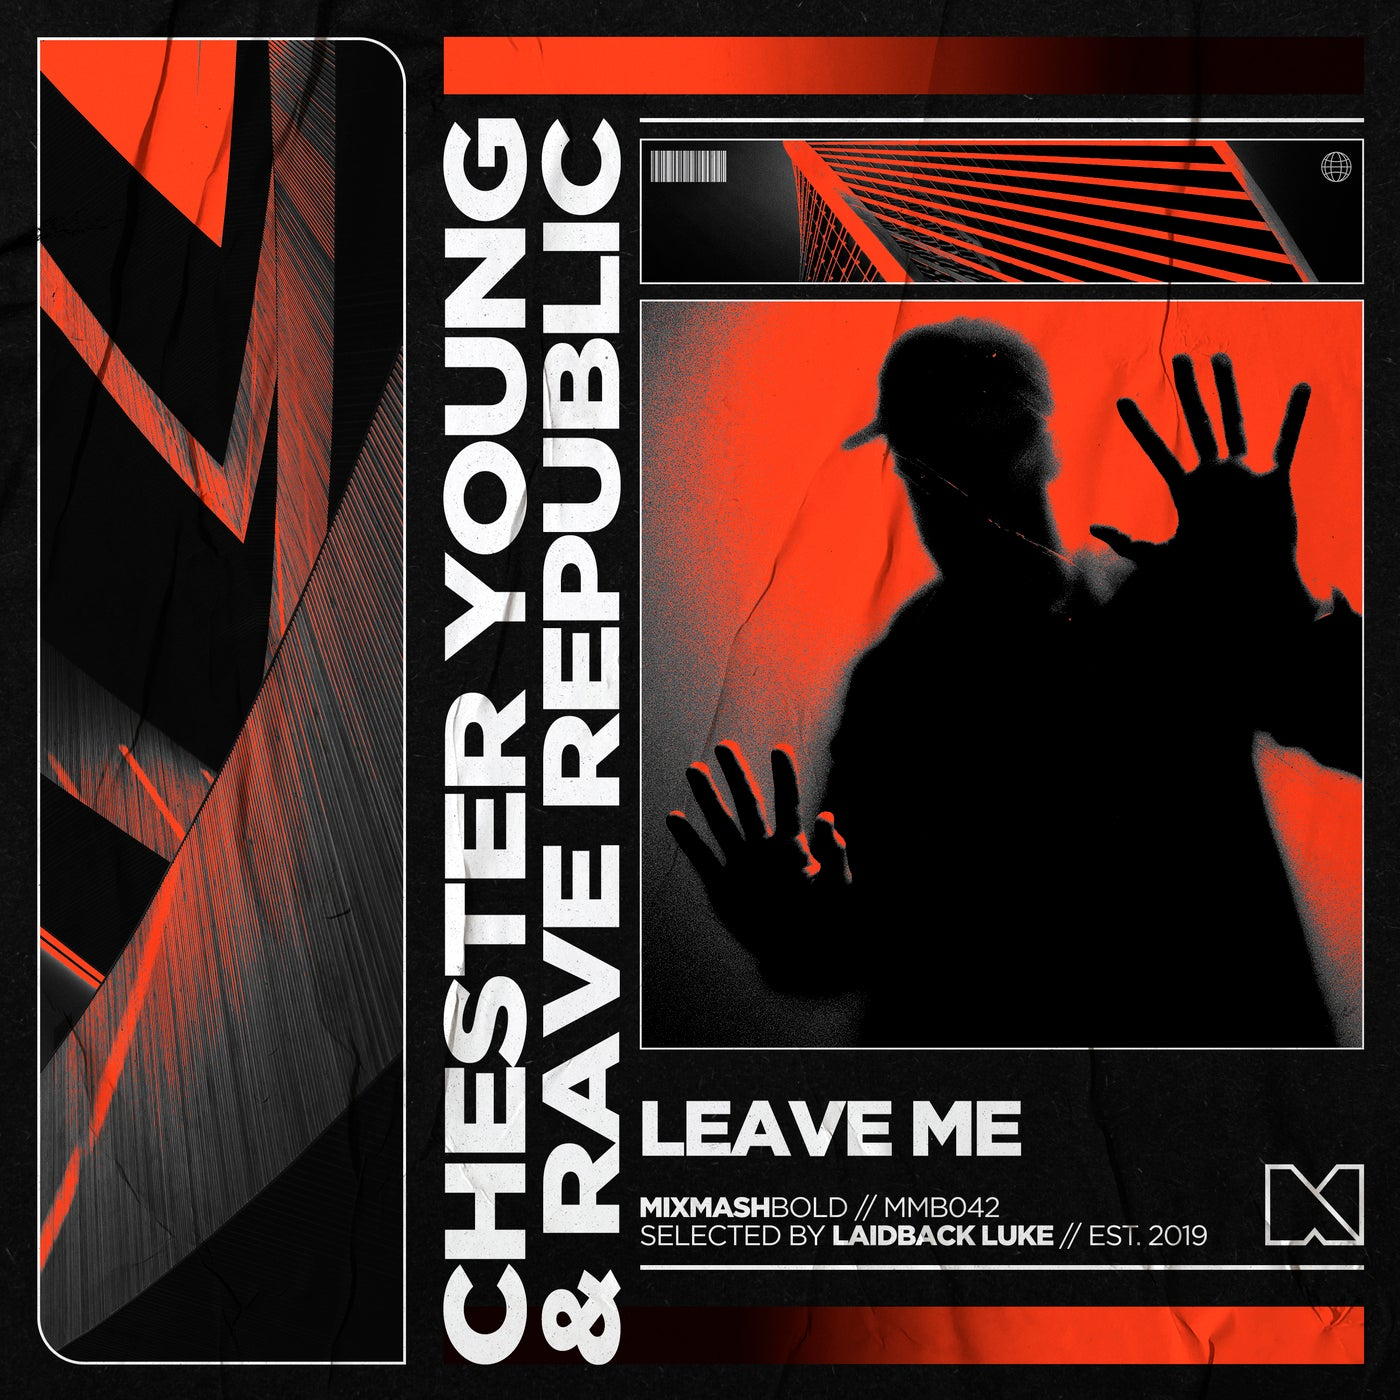 Leave Me (Extended Mix)